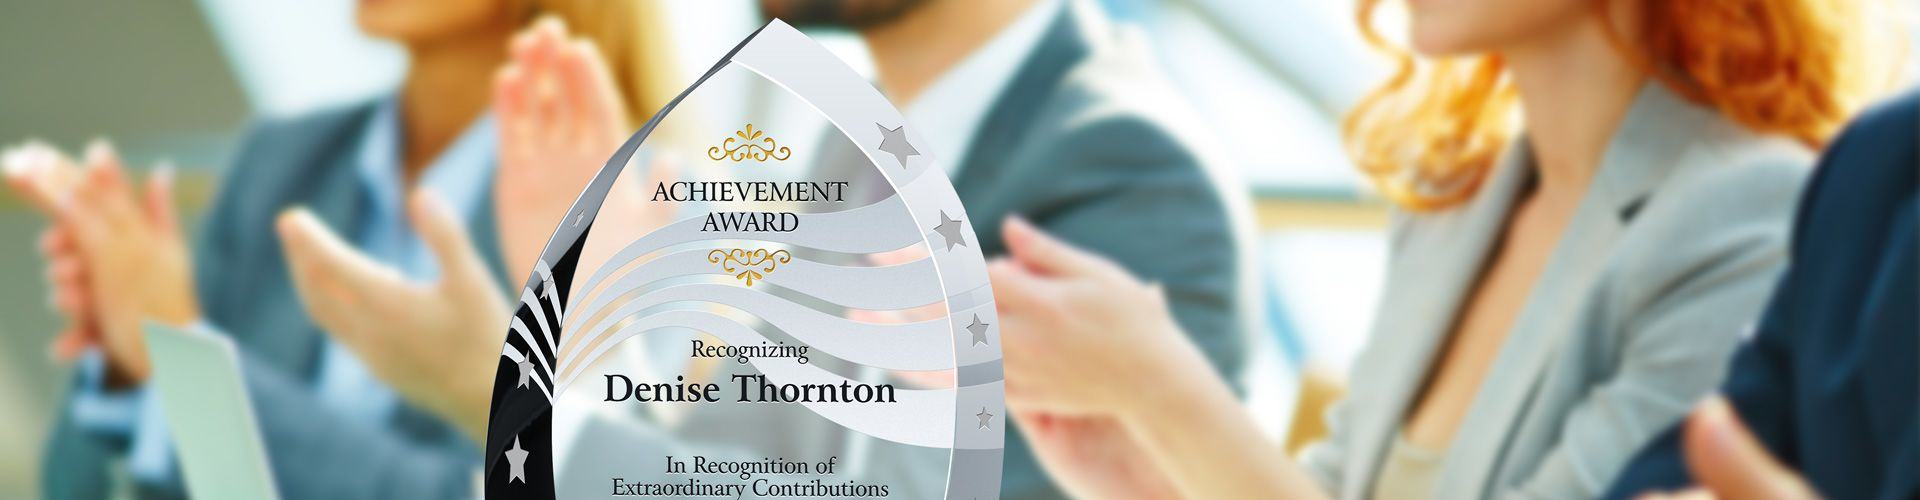 Custom Achievement Awards & Plaques for Businesses - Banner 1